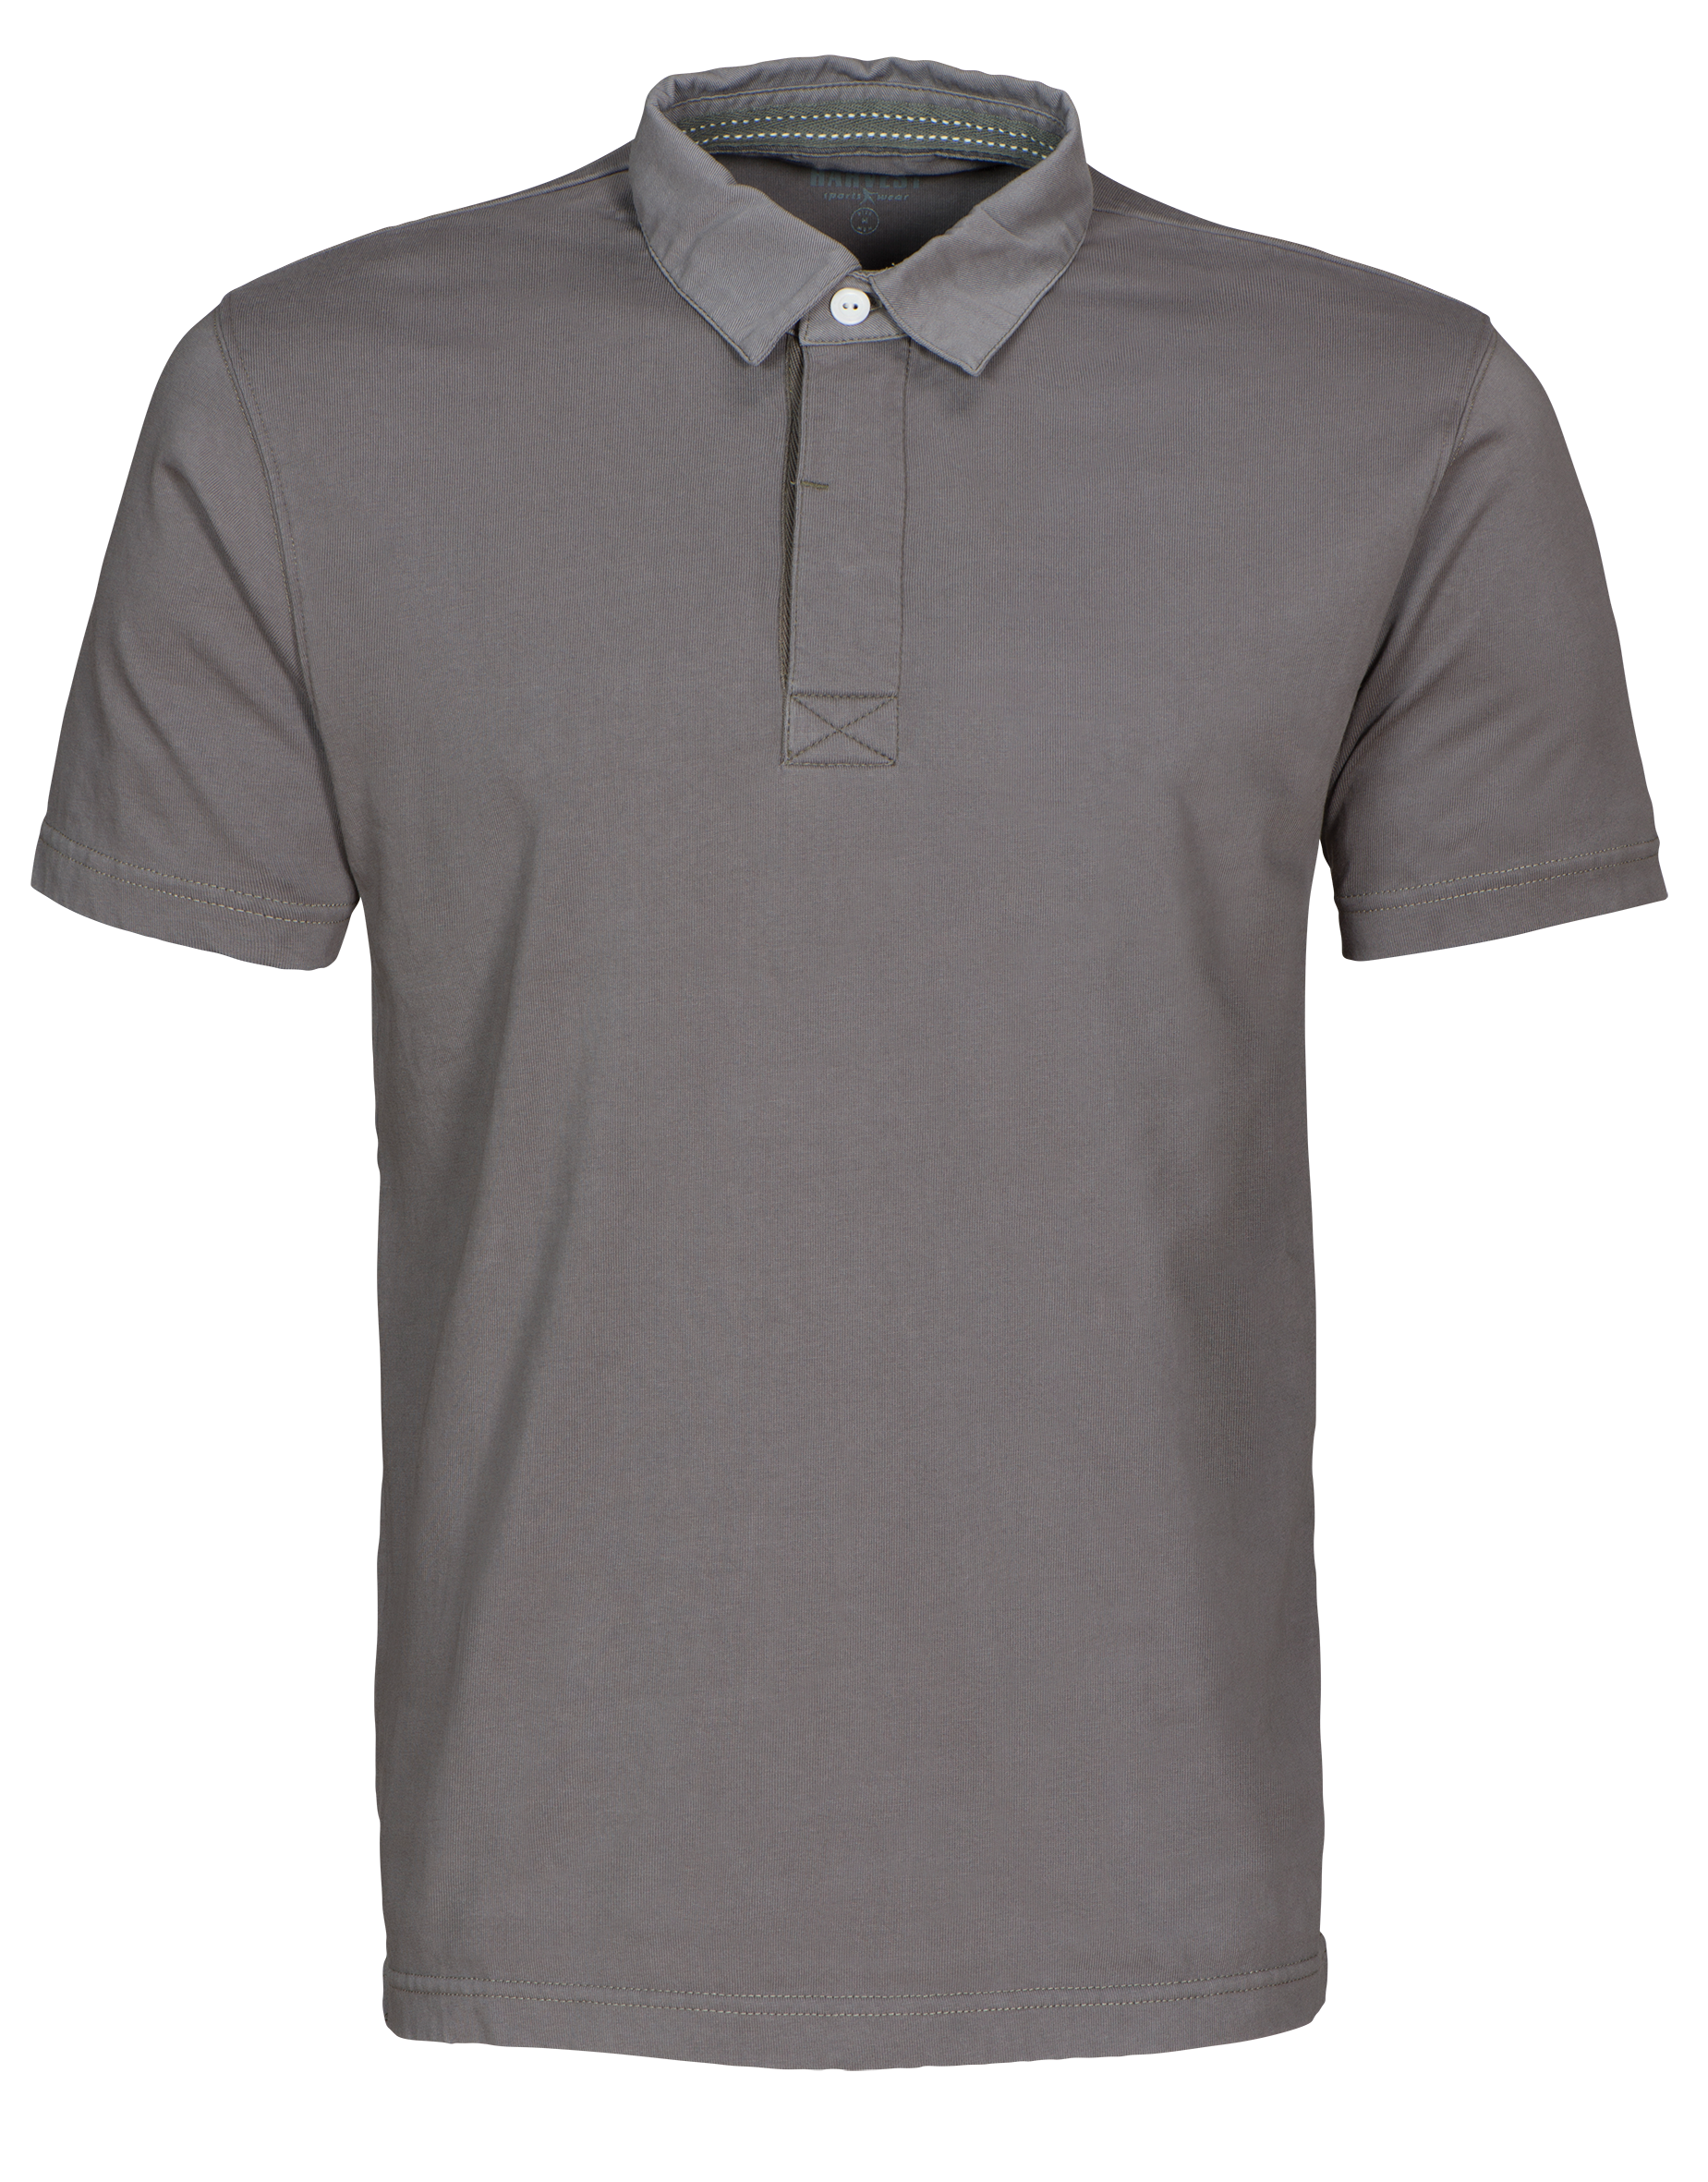 Amherst Mens Polo in 955 Faded Grey